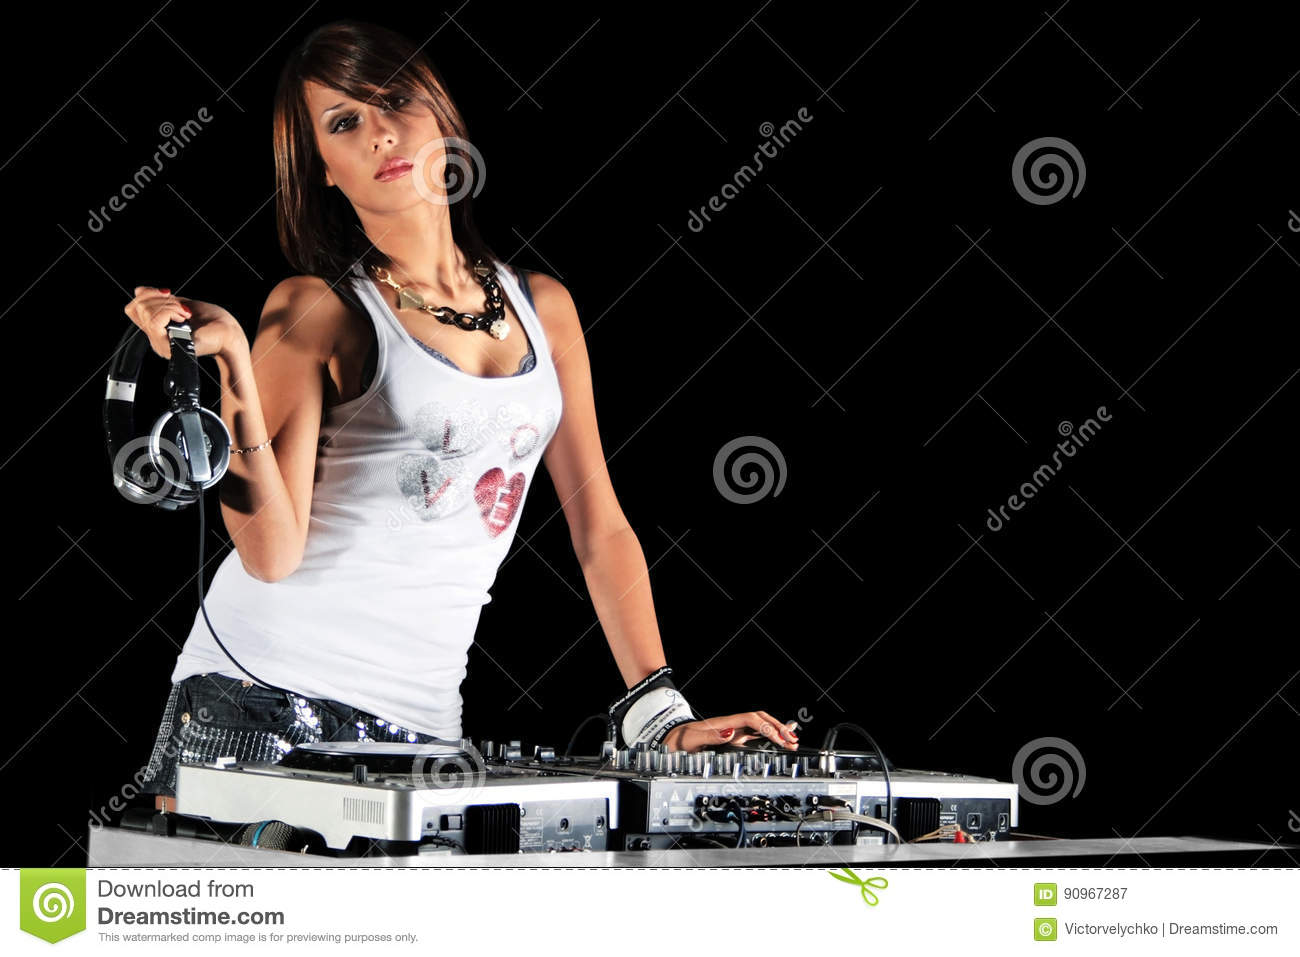 Club dj royalty free stock photo 90967287 for House music girls